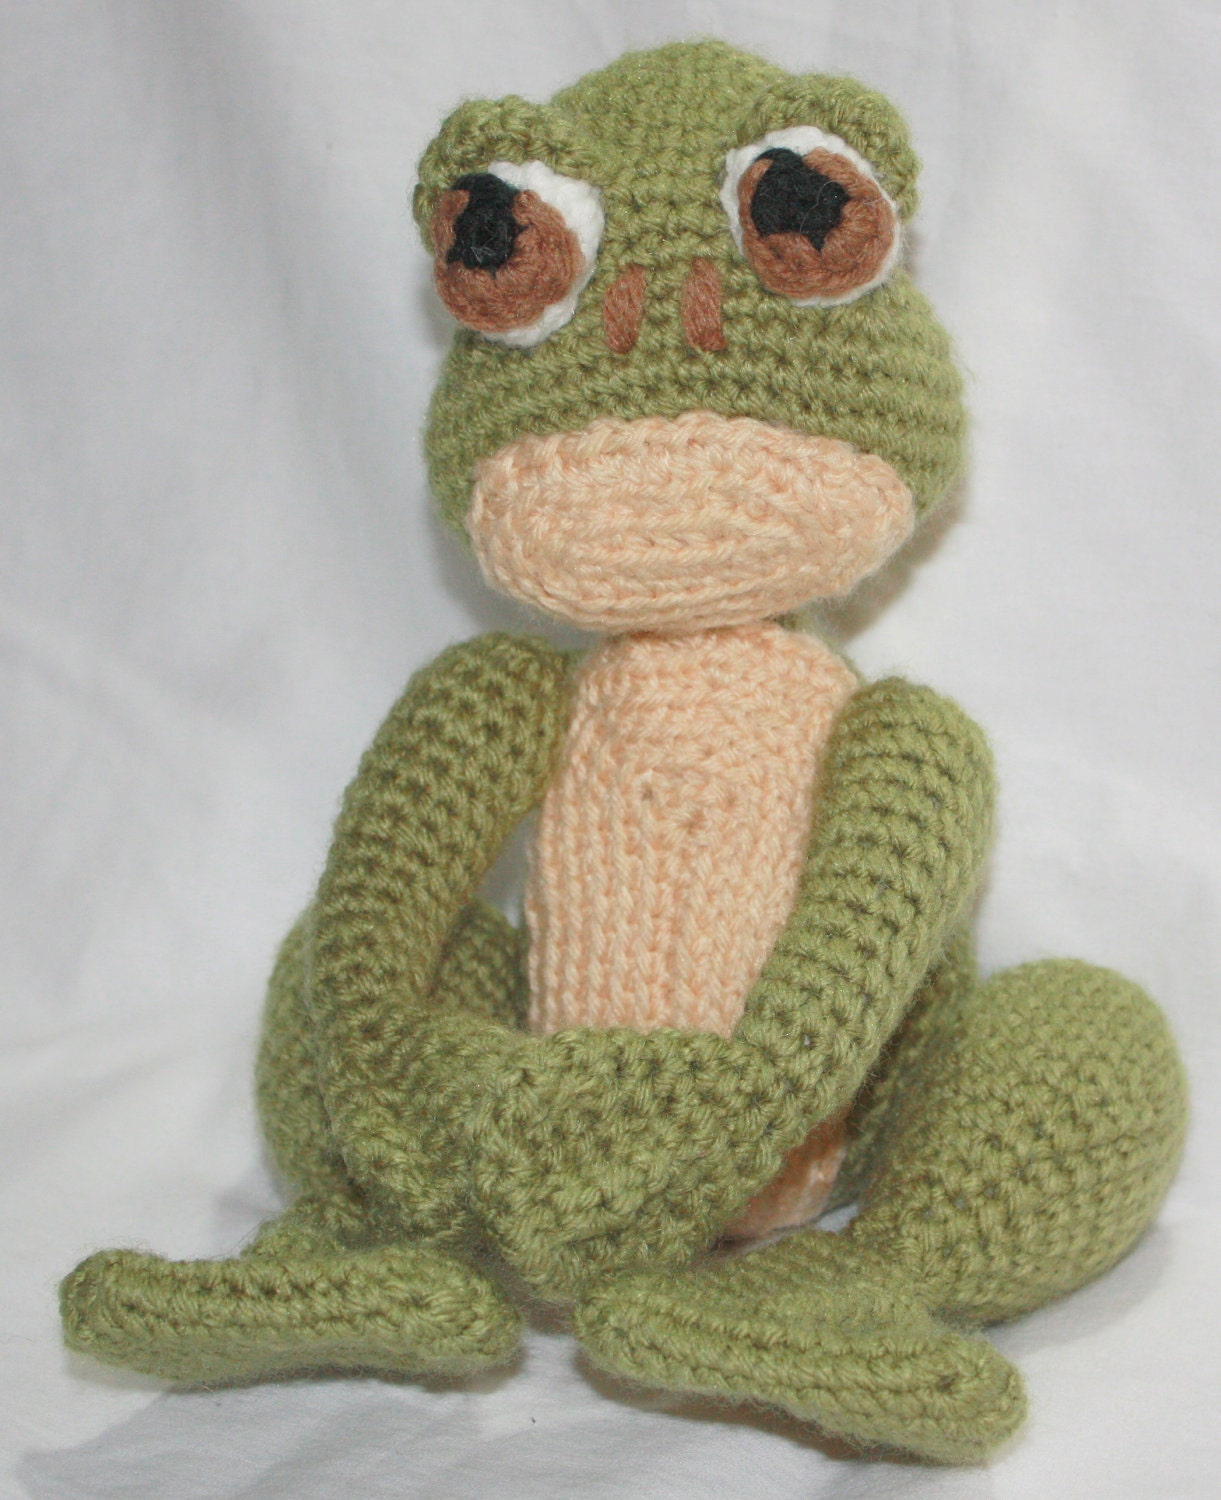 Crocheting Stuffed Animals : Crochet Frog Stuffed Animal Plush Toy by SistersBoutique2 on Etsy